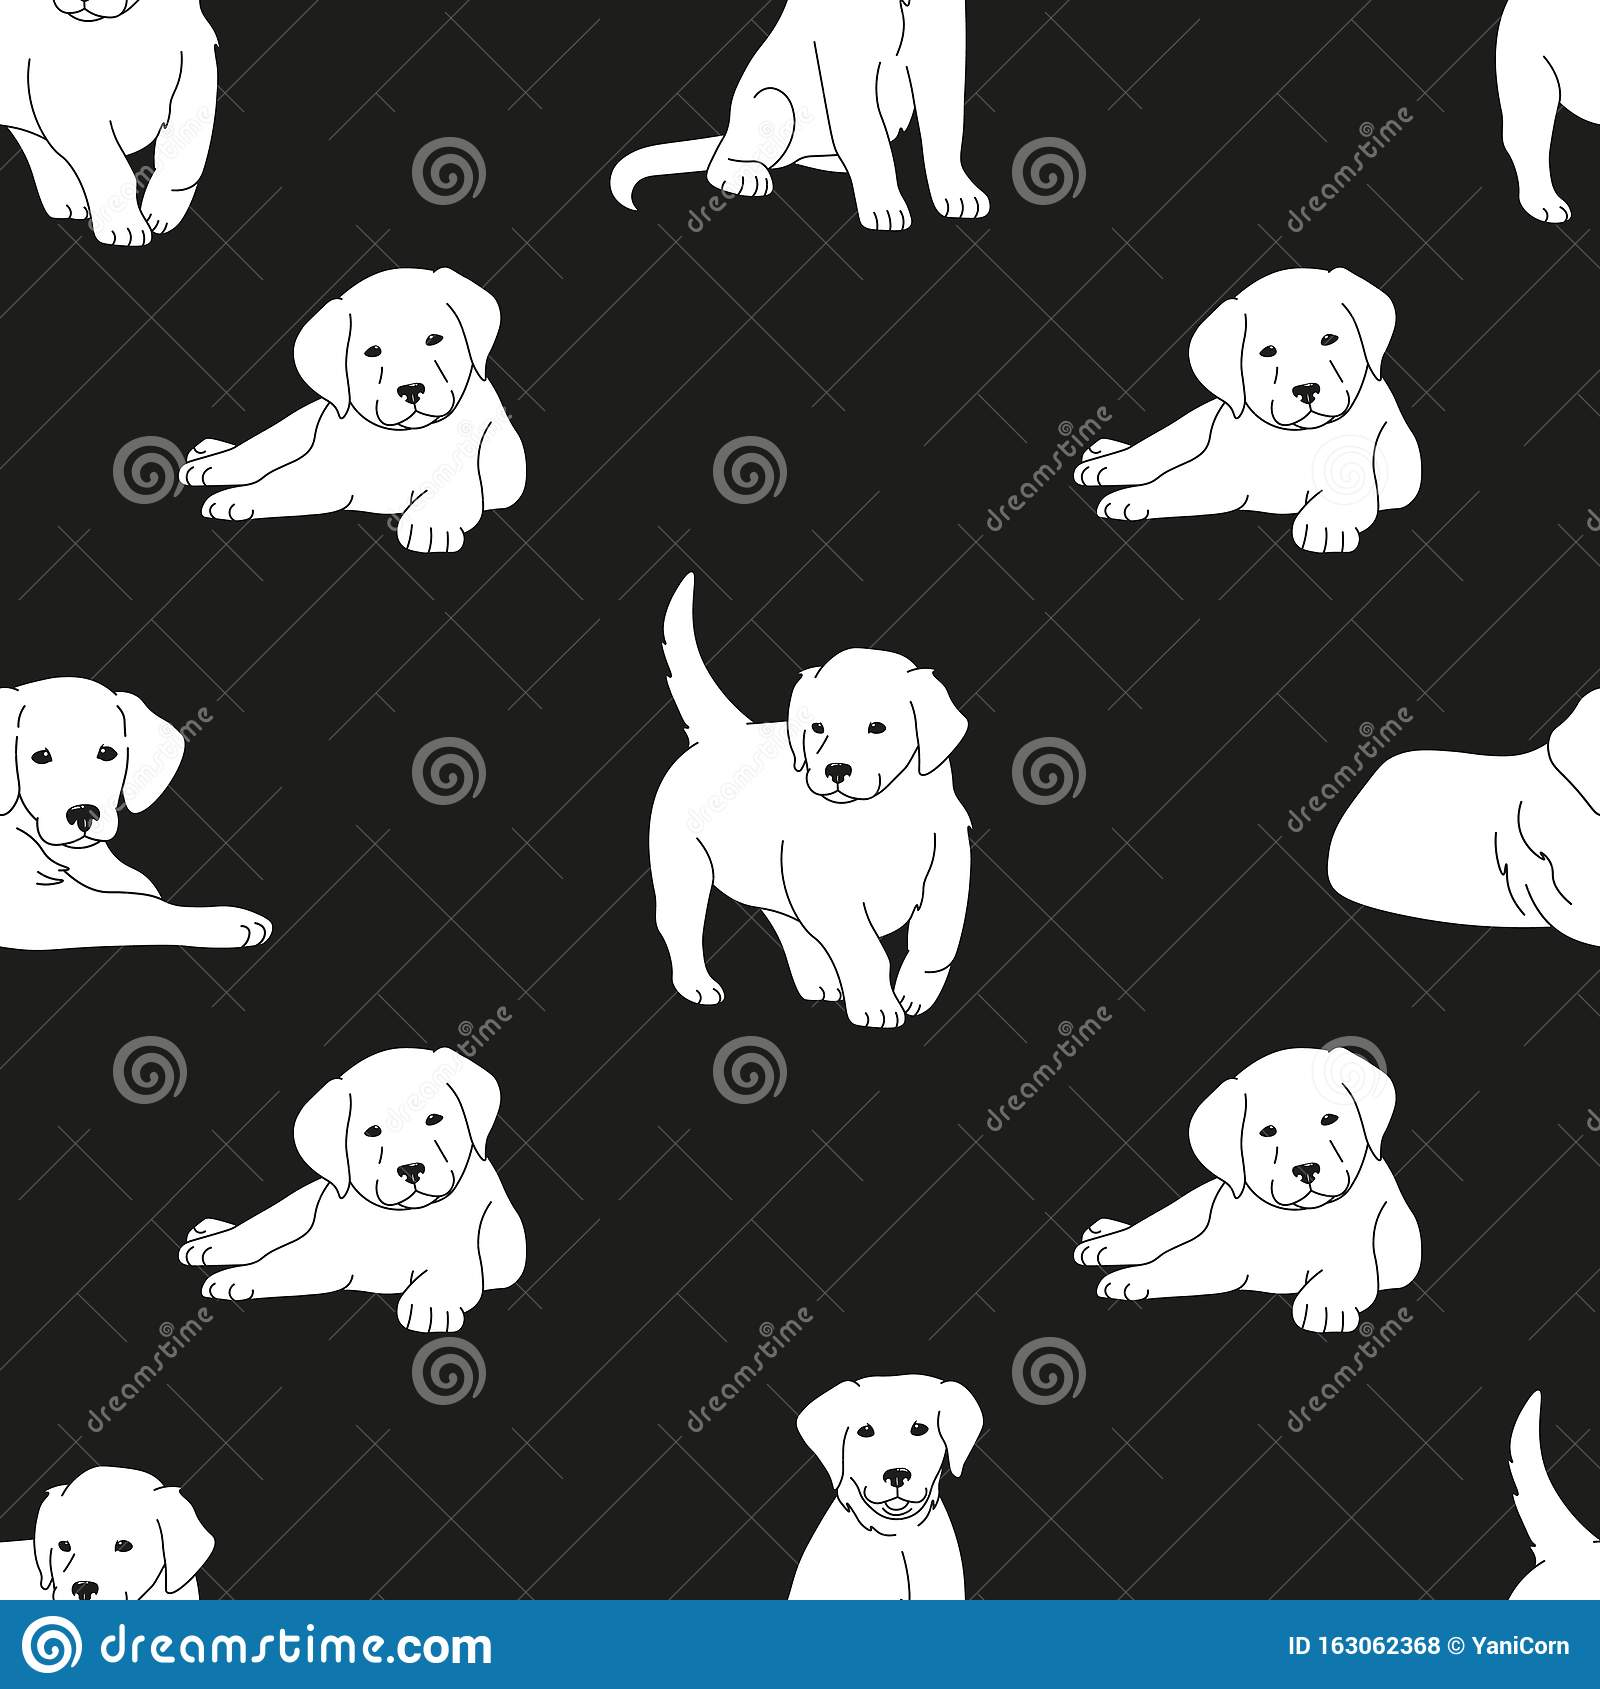 Cute White Puppies Black Thin Lines Silhouettes On Black Background Seamless Pattern Cartoon Drawing Adorable Pets Editable Stock Vector Illustration Of Textile Graphic 163062368